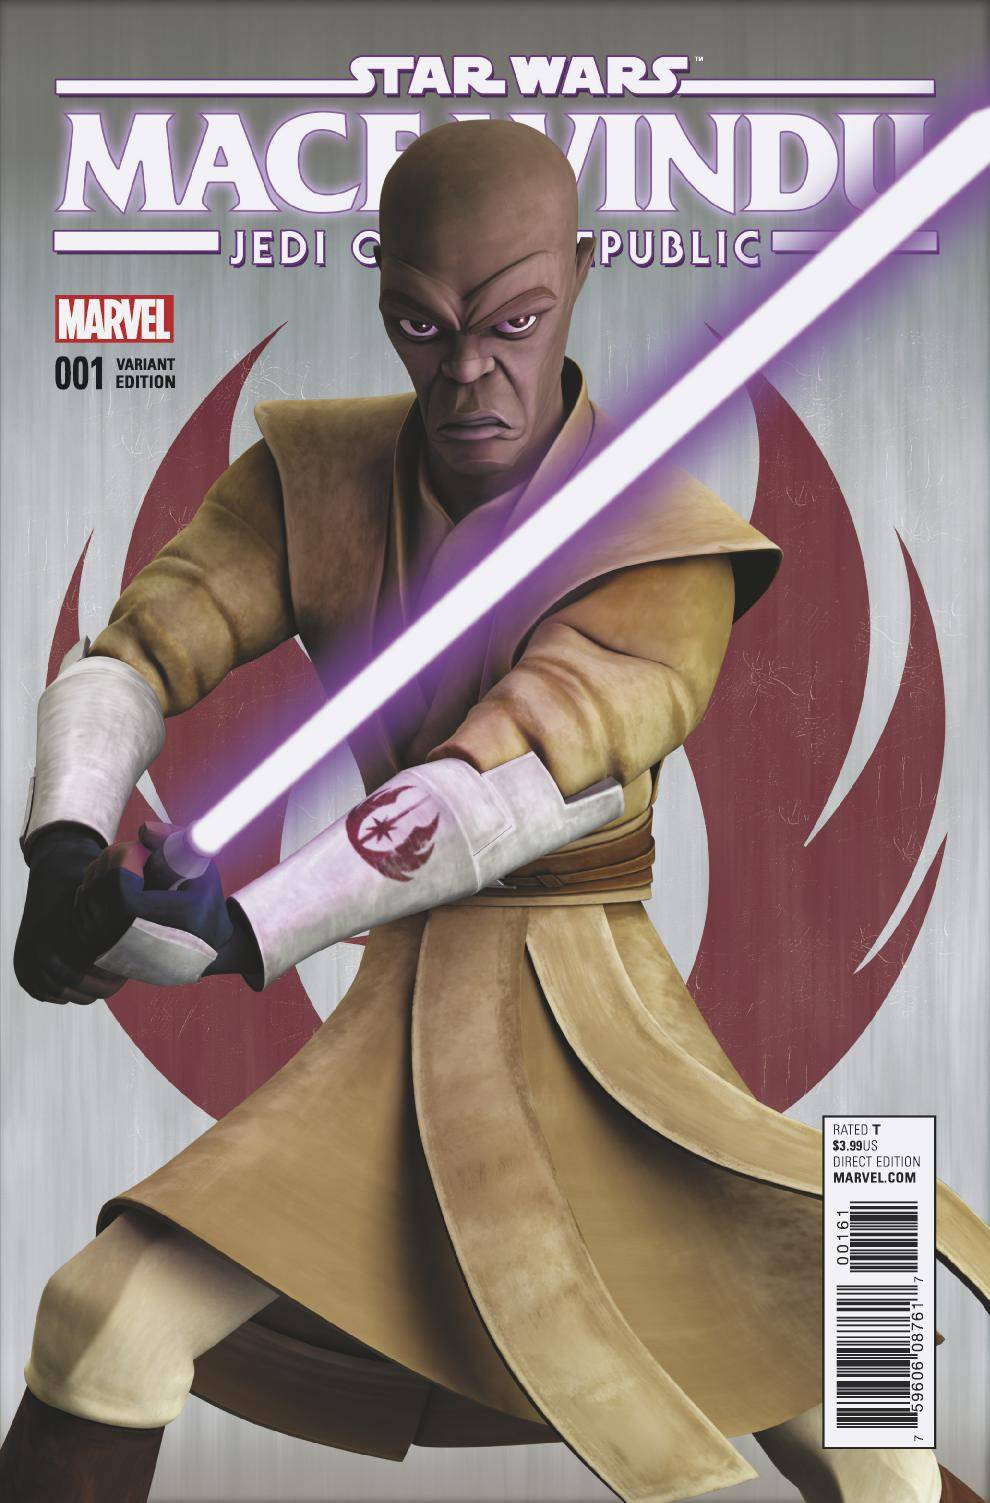 STAR WARS JEDI REPUBLIC MACE WINDU 1 of 5 ANIMATION VAR.jpg